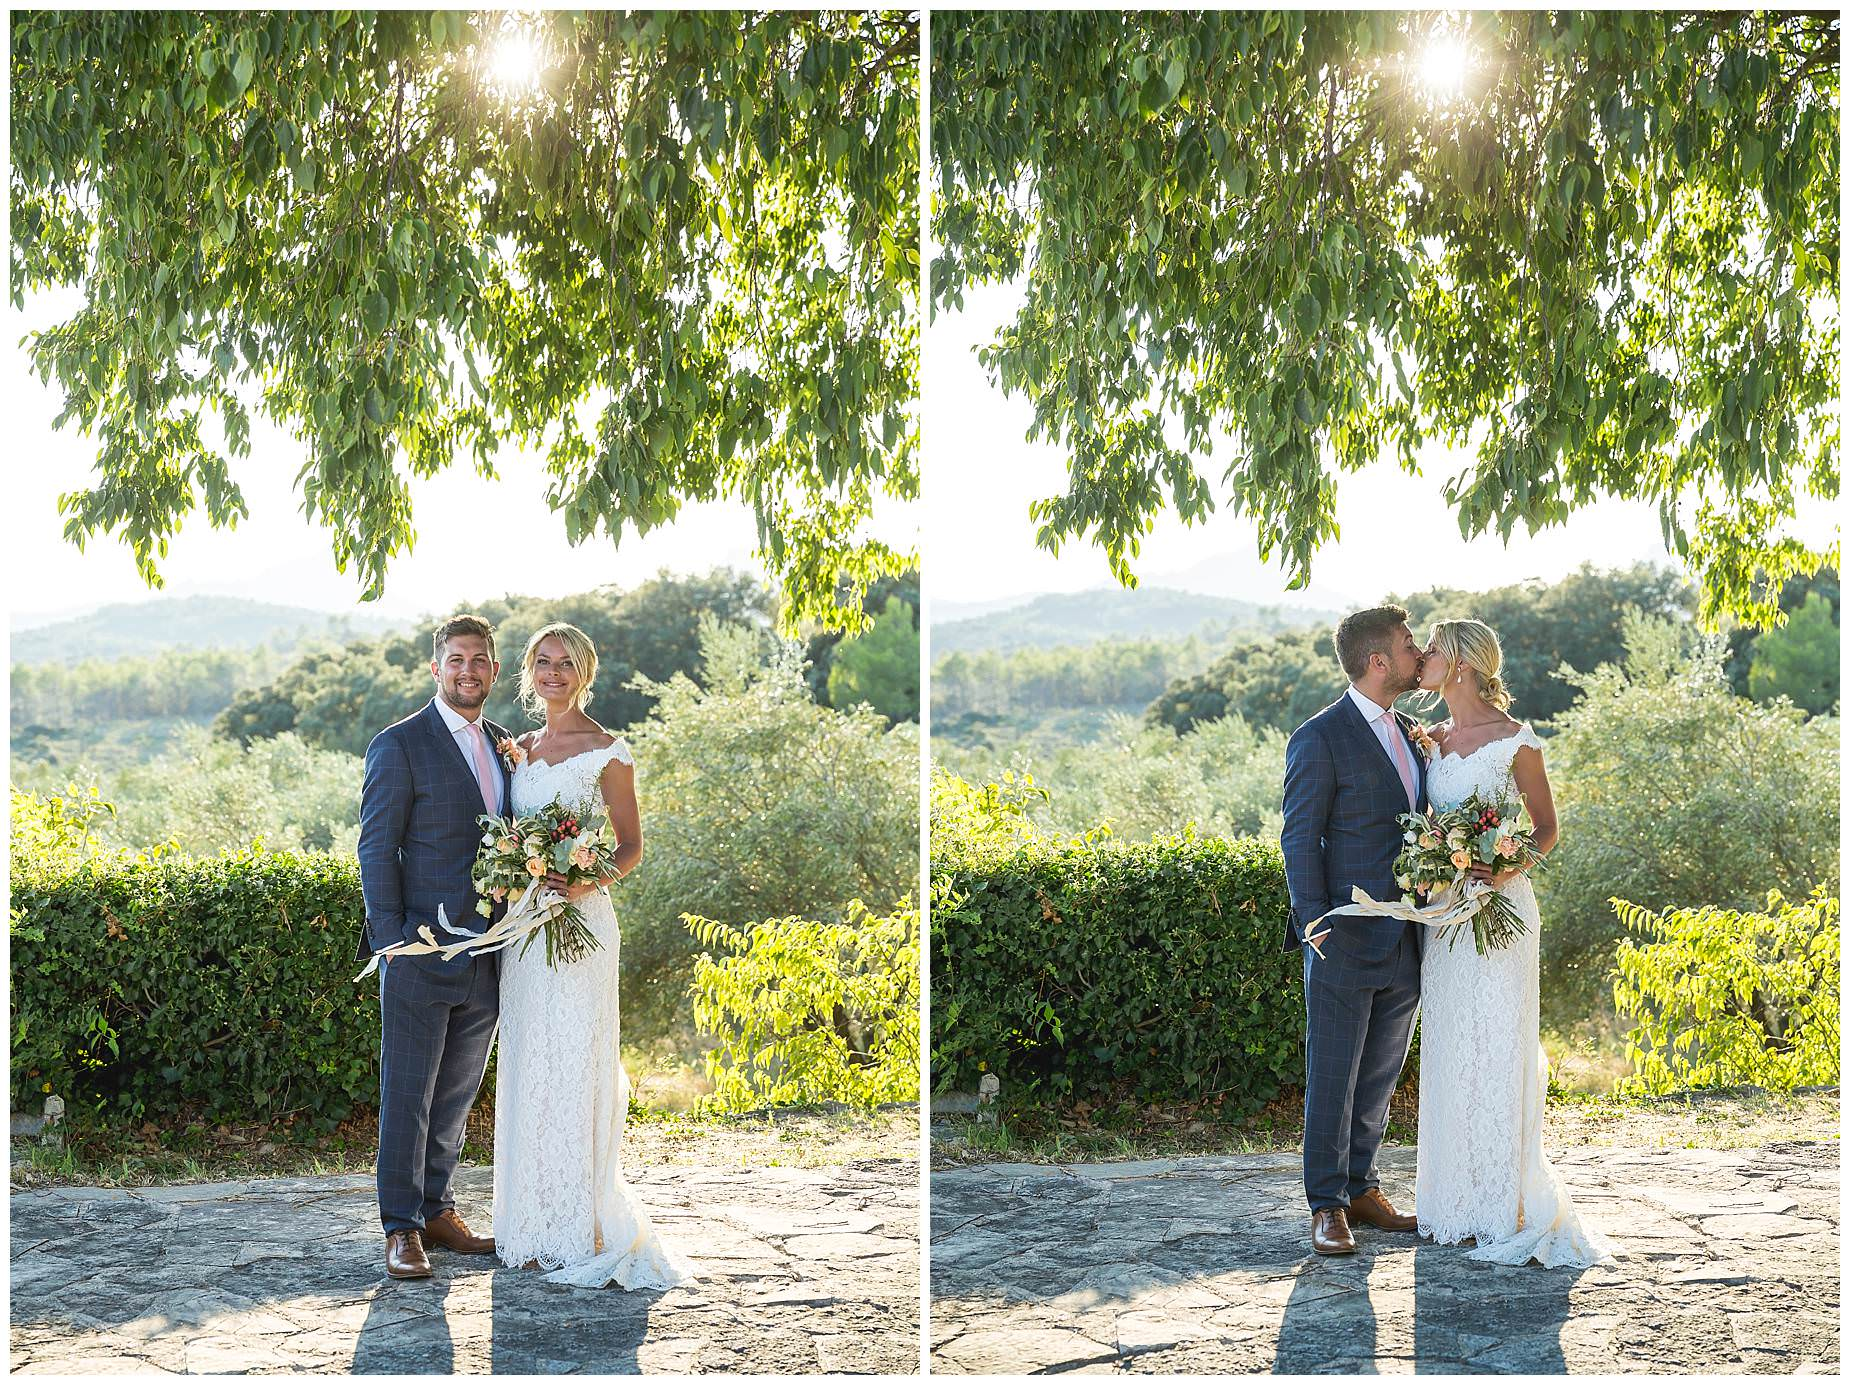 Wedding Photographer Domaine Saint Germaine